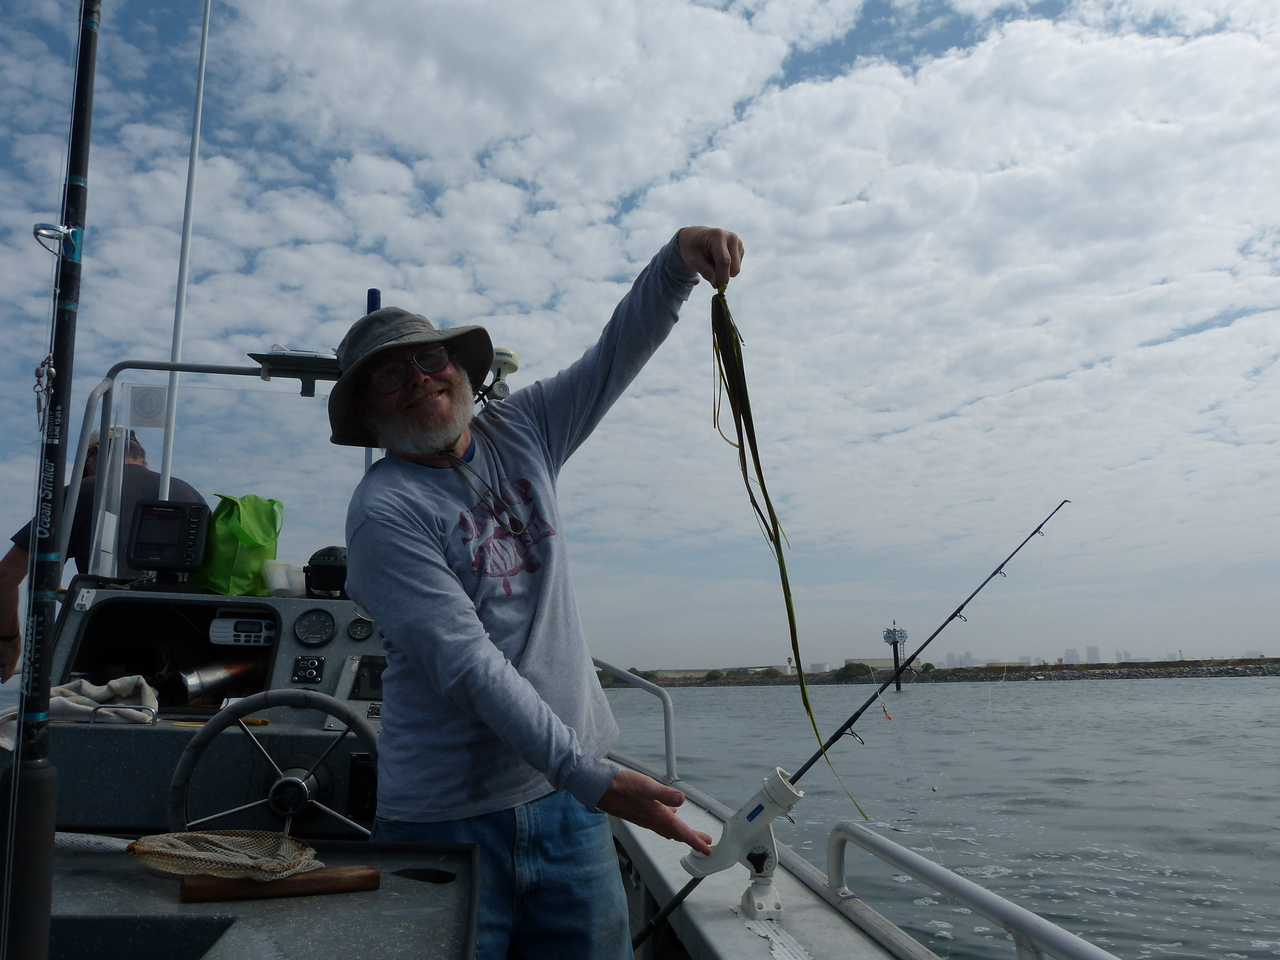 Ah, another great catch in the bay -- we were drifting a bit too close to North Island!